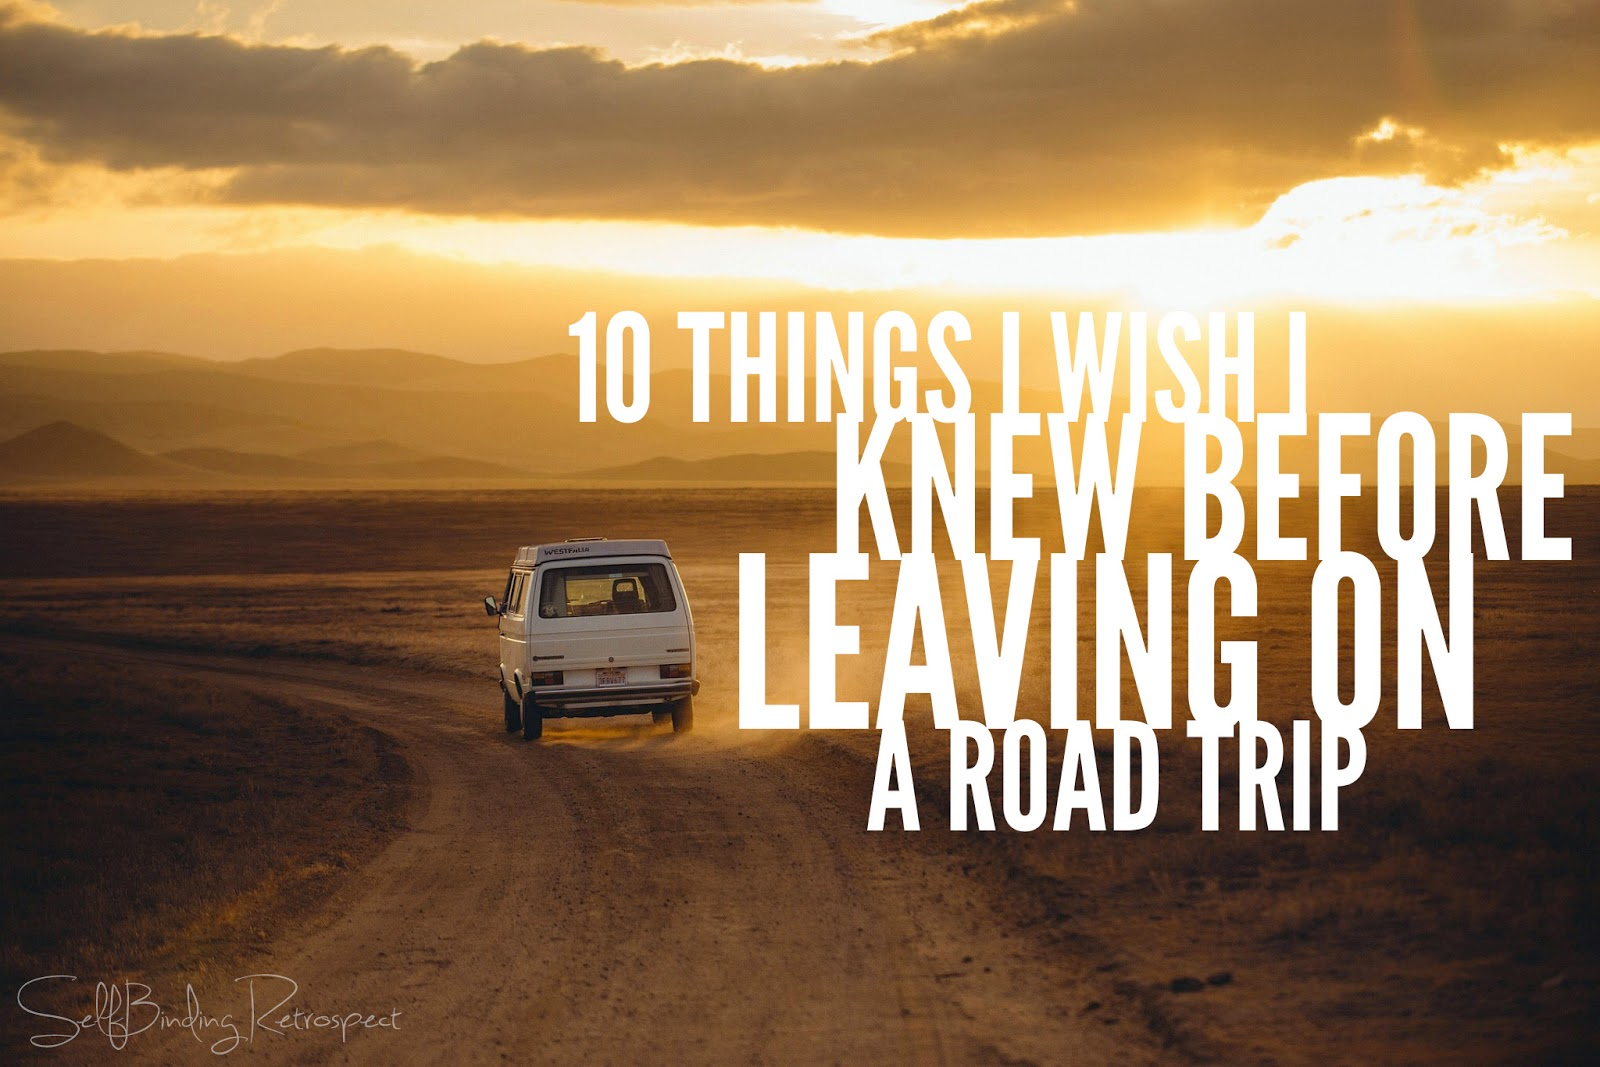 10 things I wish I knew before leaving on a #roadtrip - SelfBinding Retrospect by Alanna Rusnak